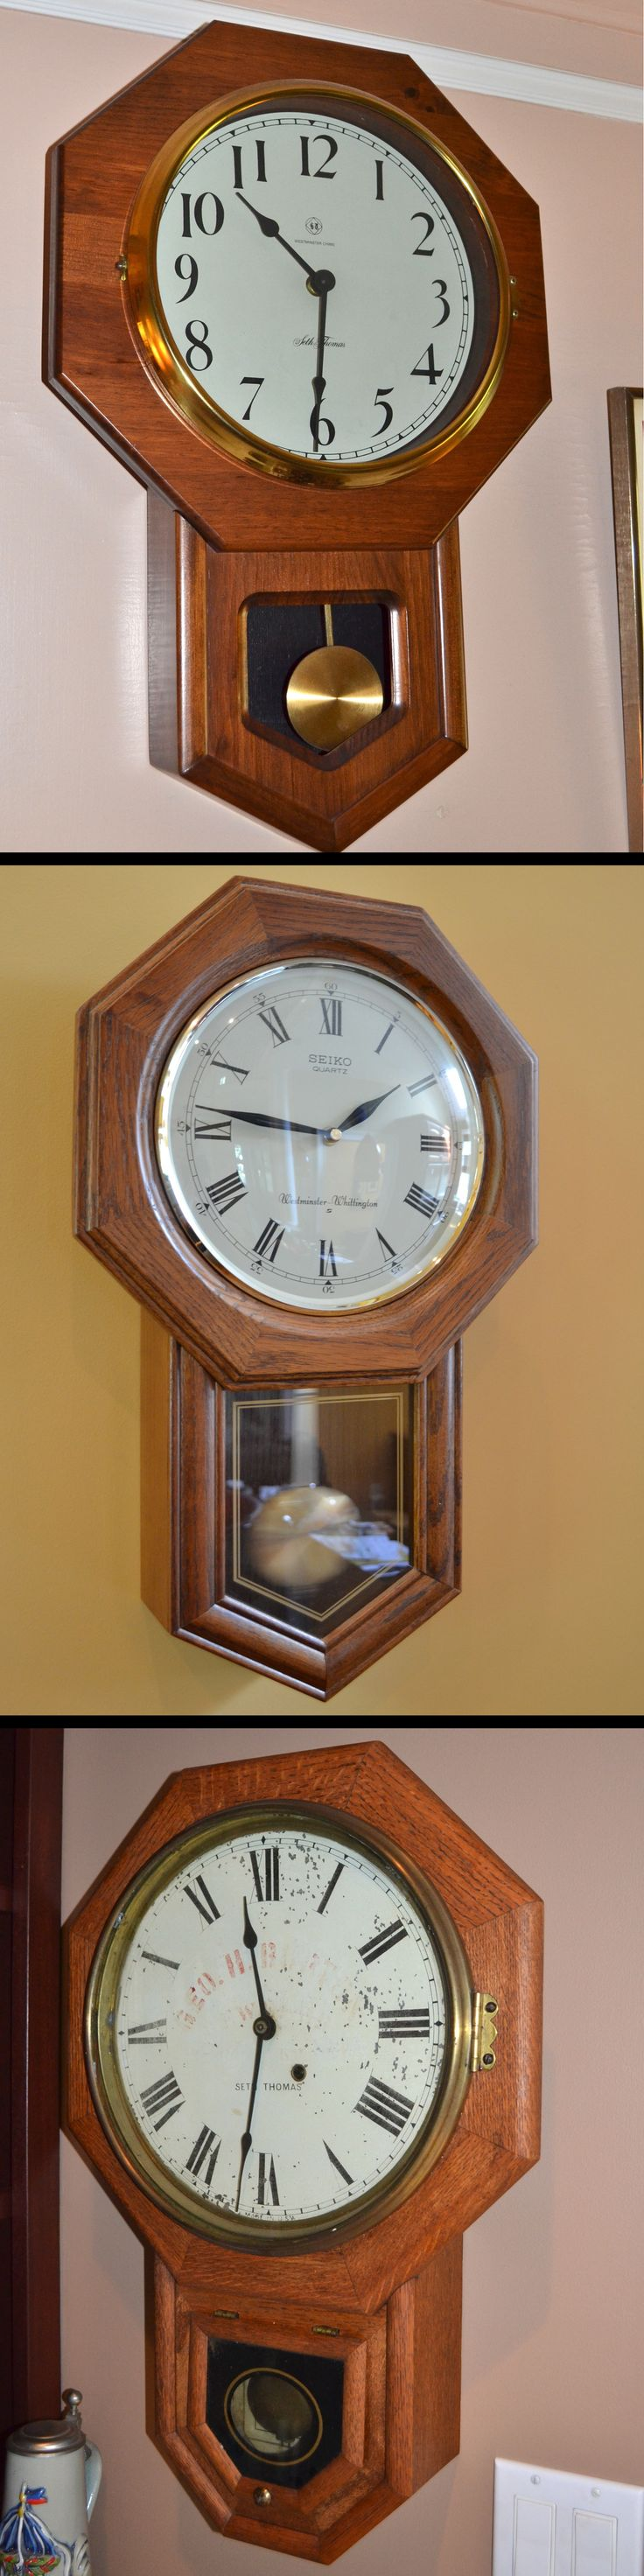 some designs never go out of style like this octagonal oak pendulum clock - Feldstein Kaminsimse